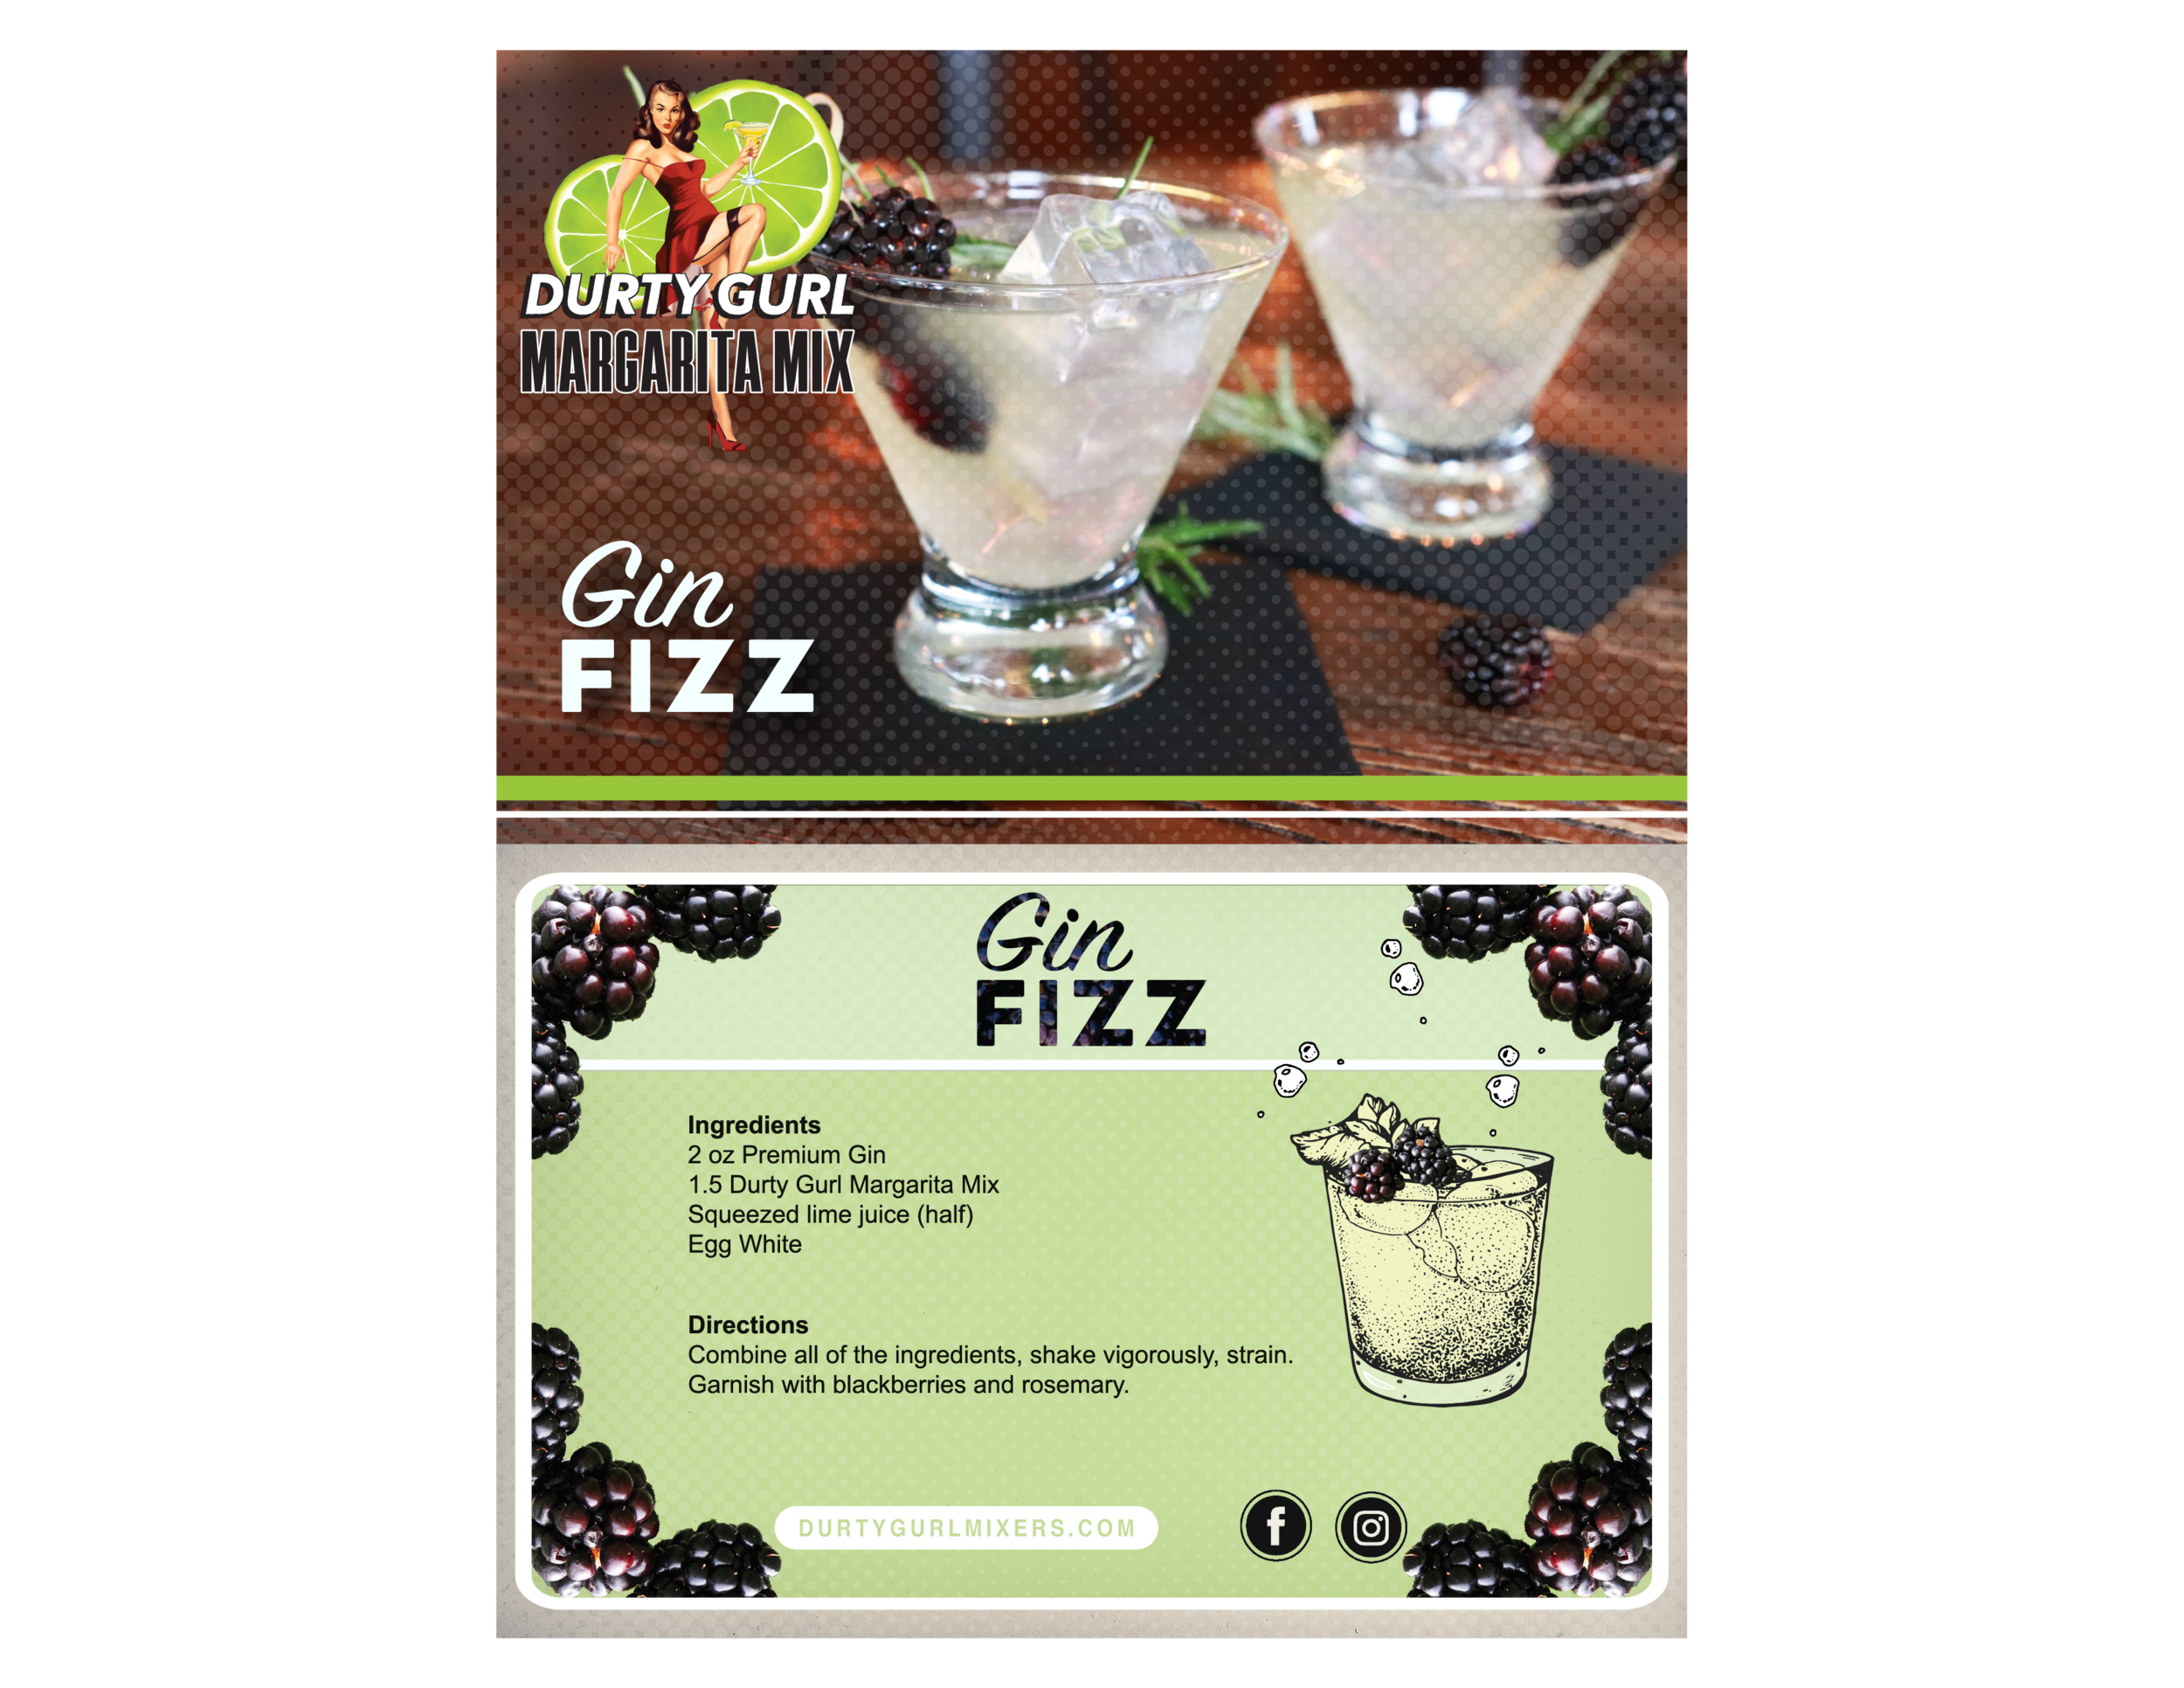 Ingredients  2 oz Premium Gin 1.5 oz Durty Gurl Margarita Mix Squeezed lime juice (half) Egg White   Directions  Combine all of the ingredients, shake vigorously, strain. Garnish with blackberries and rosemary.